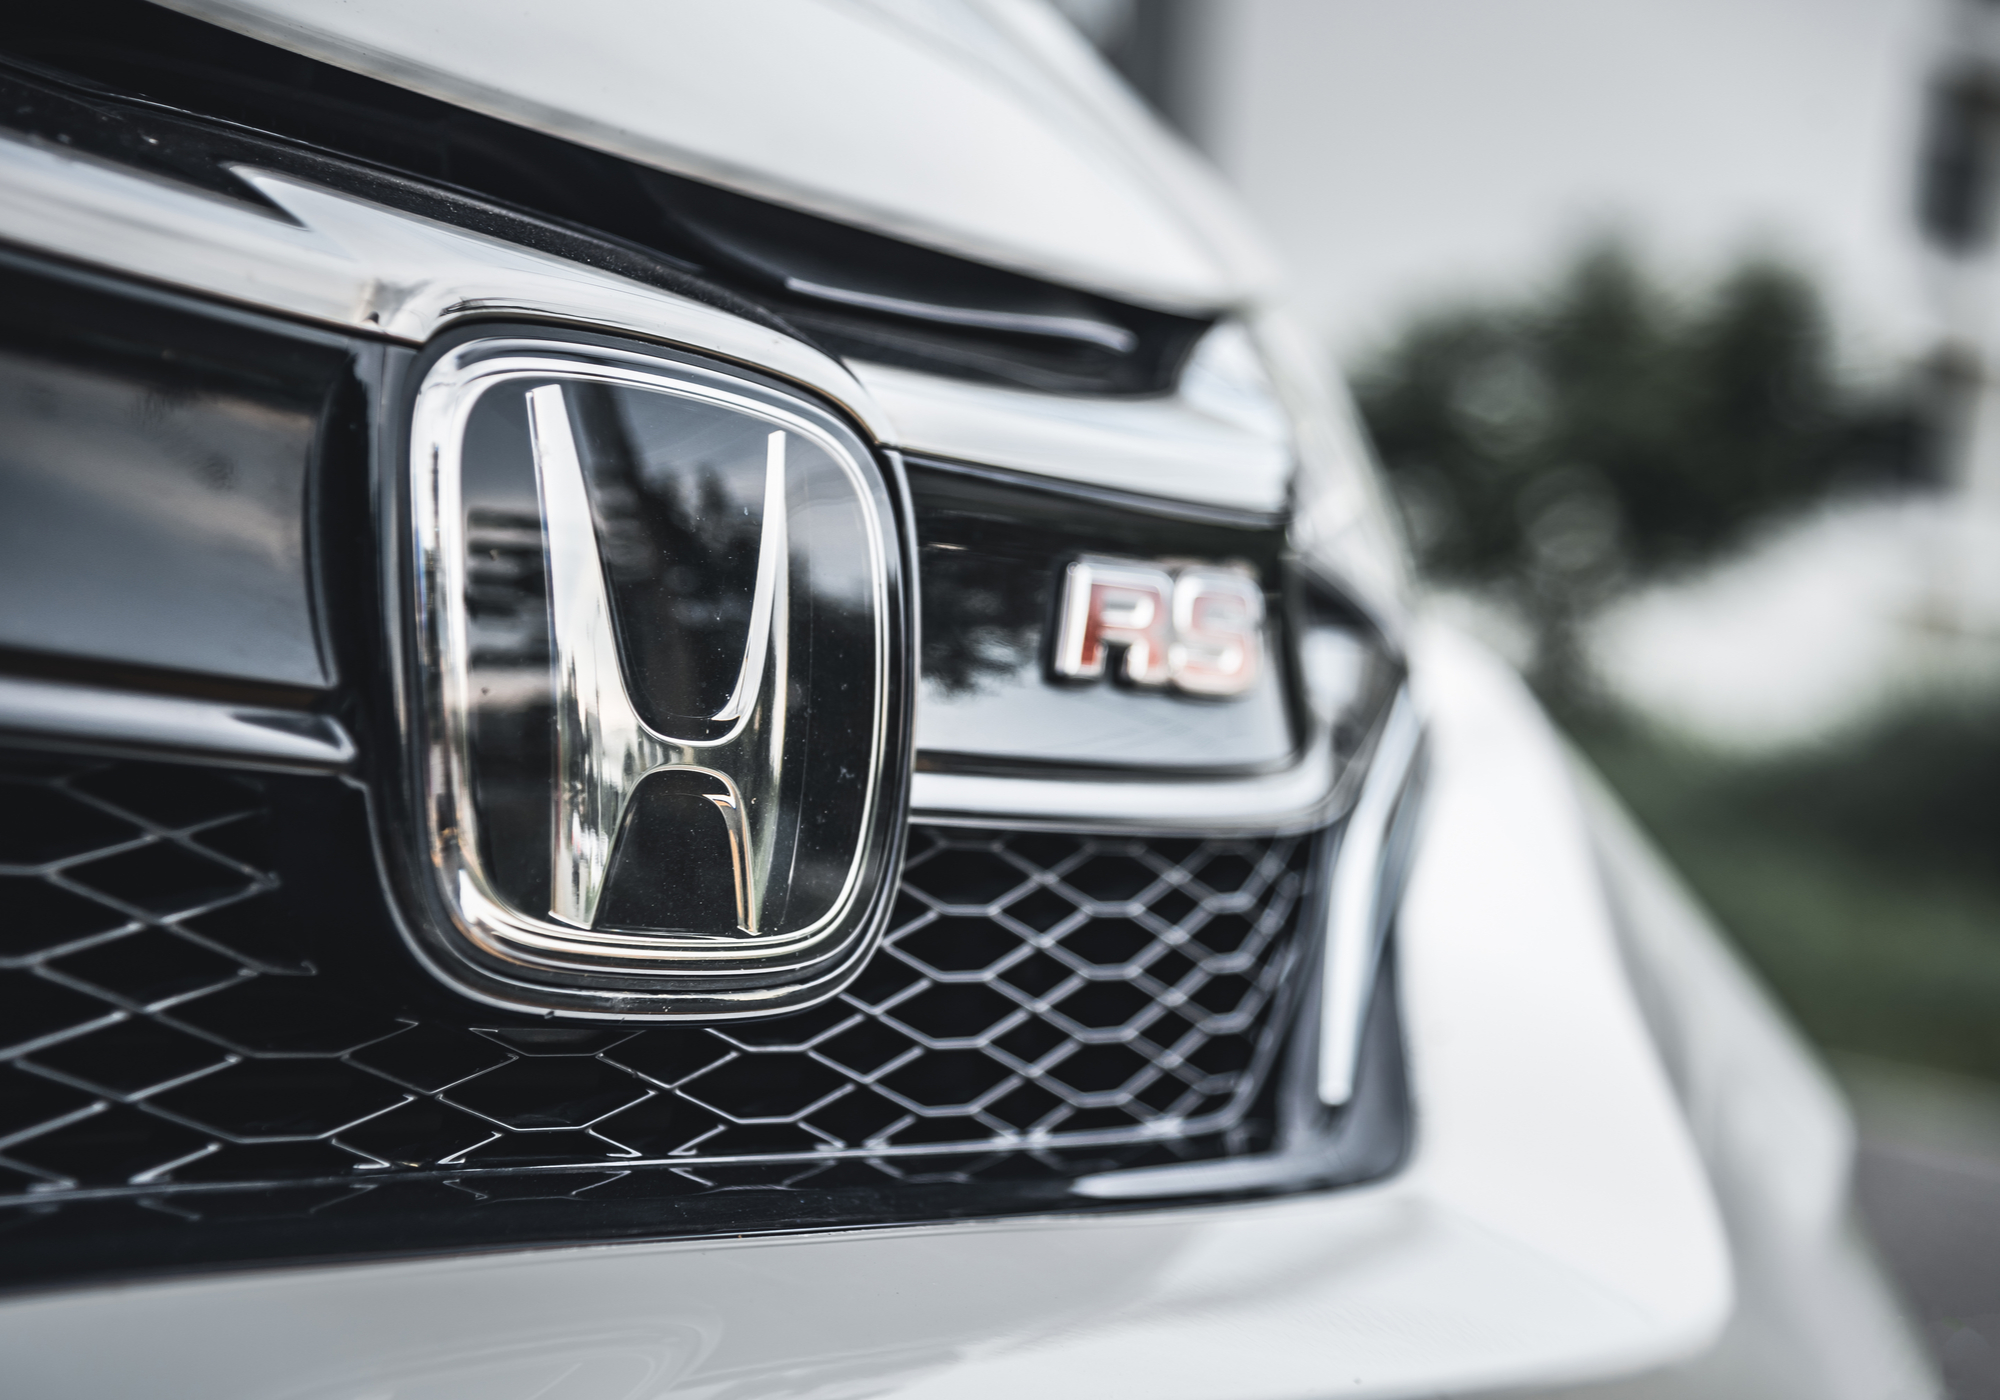 Cyberattack halts Honda production, ransomware suspected